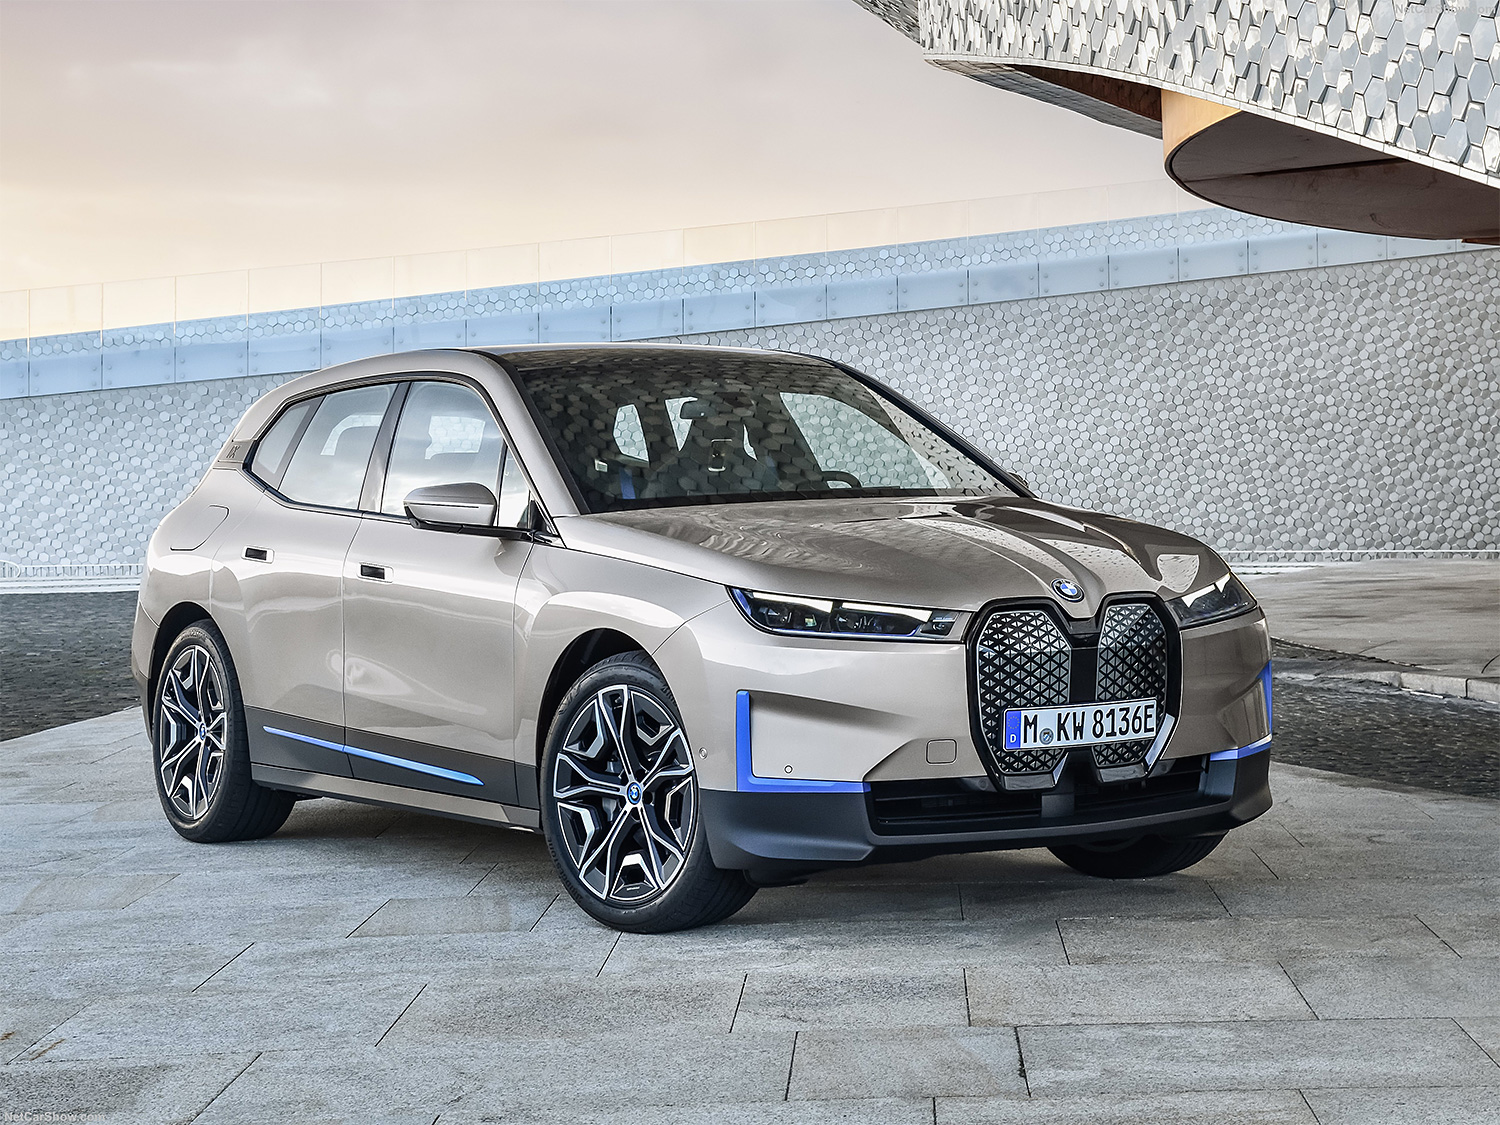 BMW Introduces the 2022 iX, a 500-Horsepower Electric Crossover at werd.com